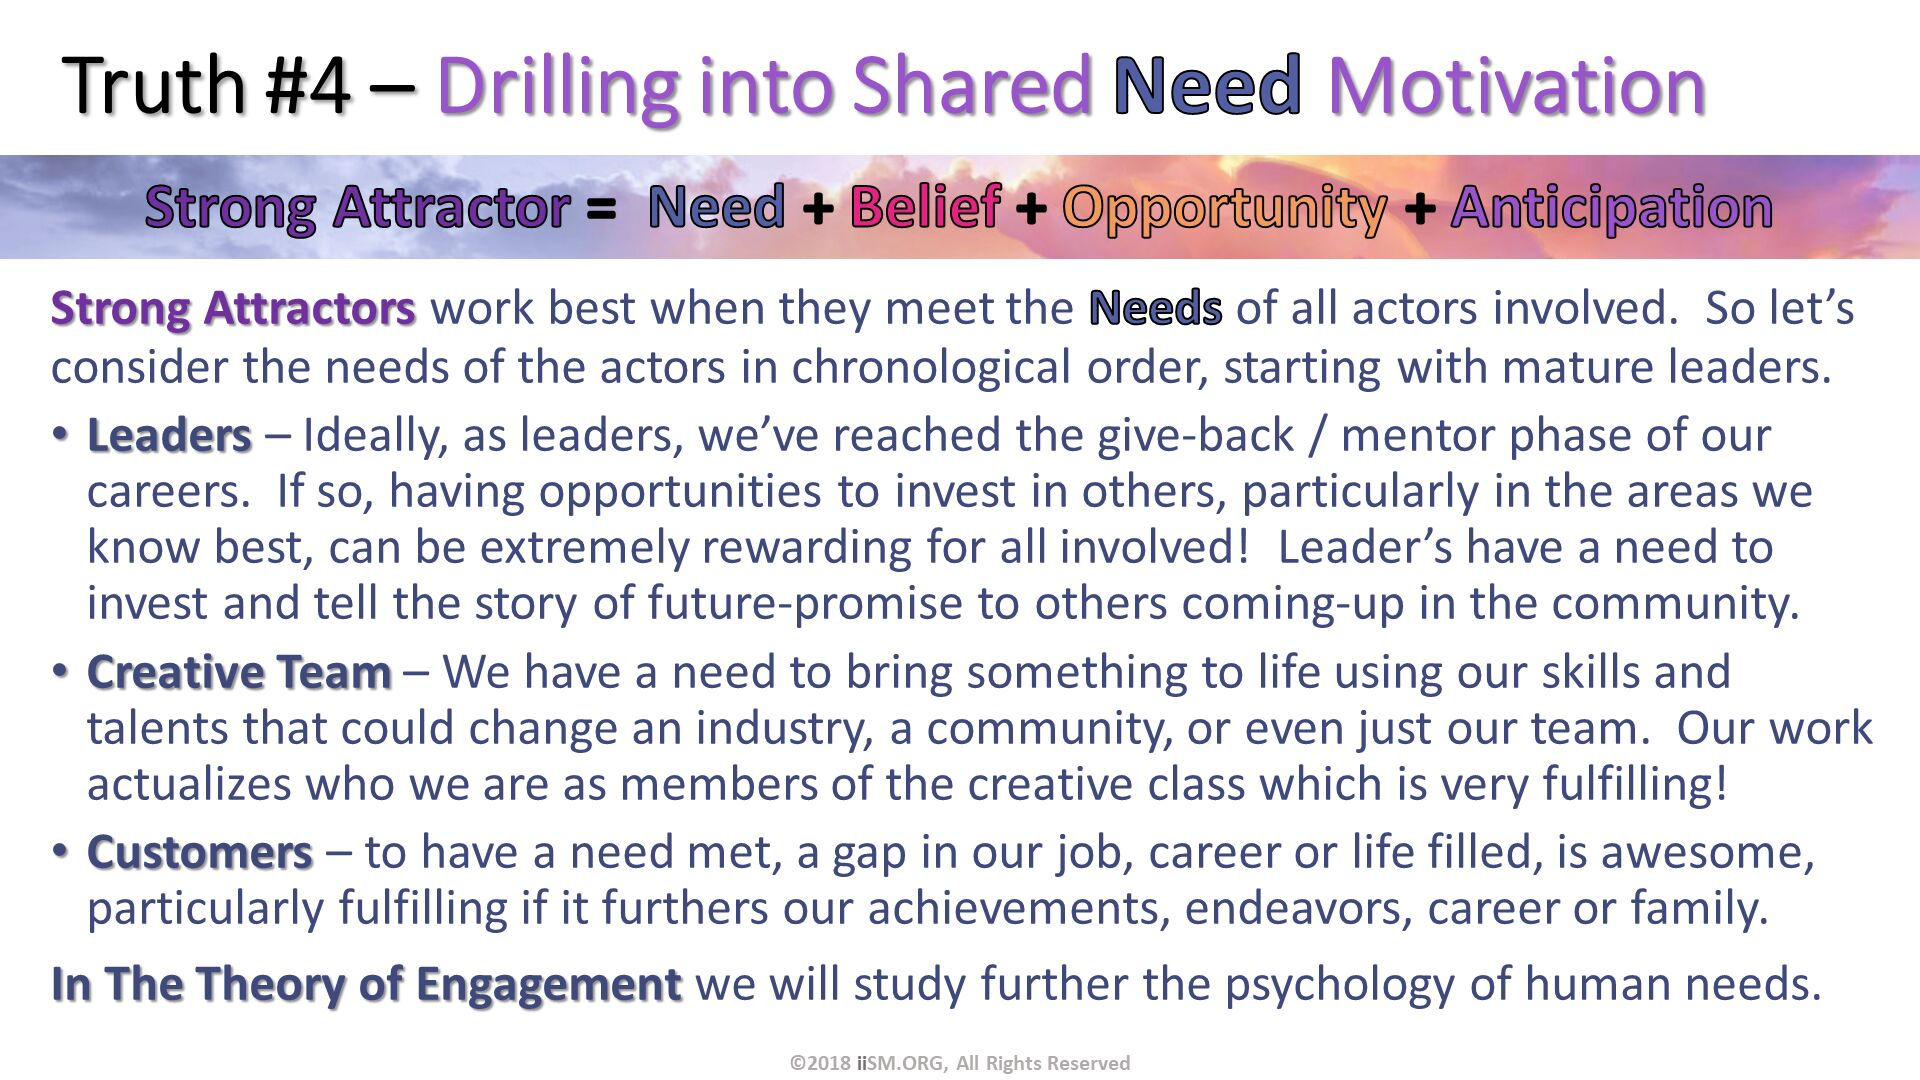 Truth #4 – Drilling into Shared Need Motivation. Strong Attractors work best when they meet the Needs of all actors involved.  So let's consider the needs of the actors in chronological order, starting with mature leaders. Leaders – Ideally, as leaders, we've reached the give-back / mentor phase of our careers.  If so, having opportunities to invest in others, particularly in the areas we know best, can be extremely rewarding for all involved!  Leader's have a need to invest and tell the story of future-promise to others coming-up in the community. Creative Team – We have a need to bring something to life using our skills and talents that could change an industry, a community, or even just our team.  Our work actualizes who we are as members of the creative class which is very fulfilling! Customers – to have a need met, a gap in our job, career or life filled, is awesome, particularly fulfilling if it furthers our achievements, endeavors, career or family. In The Theory of Engagement we will study further the psychology of human needs. . ©2018 iiSM.ORG, All Rights Reserved.